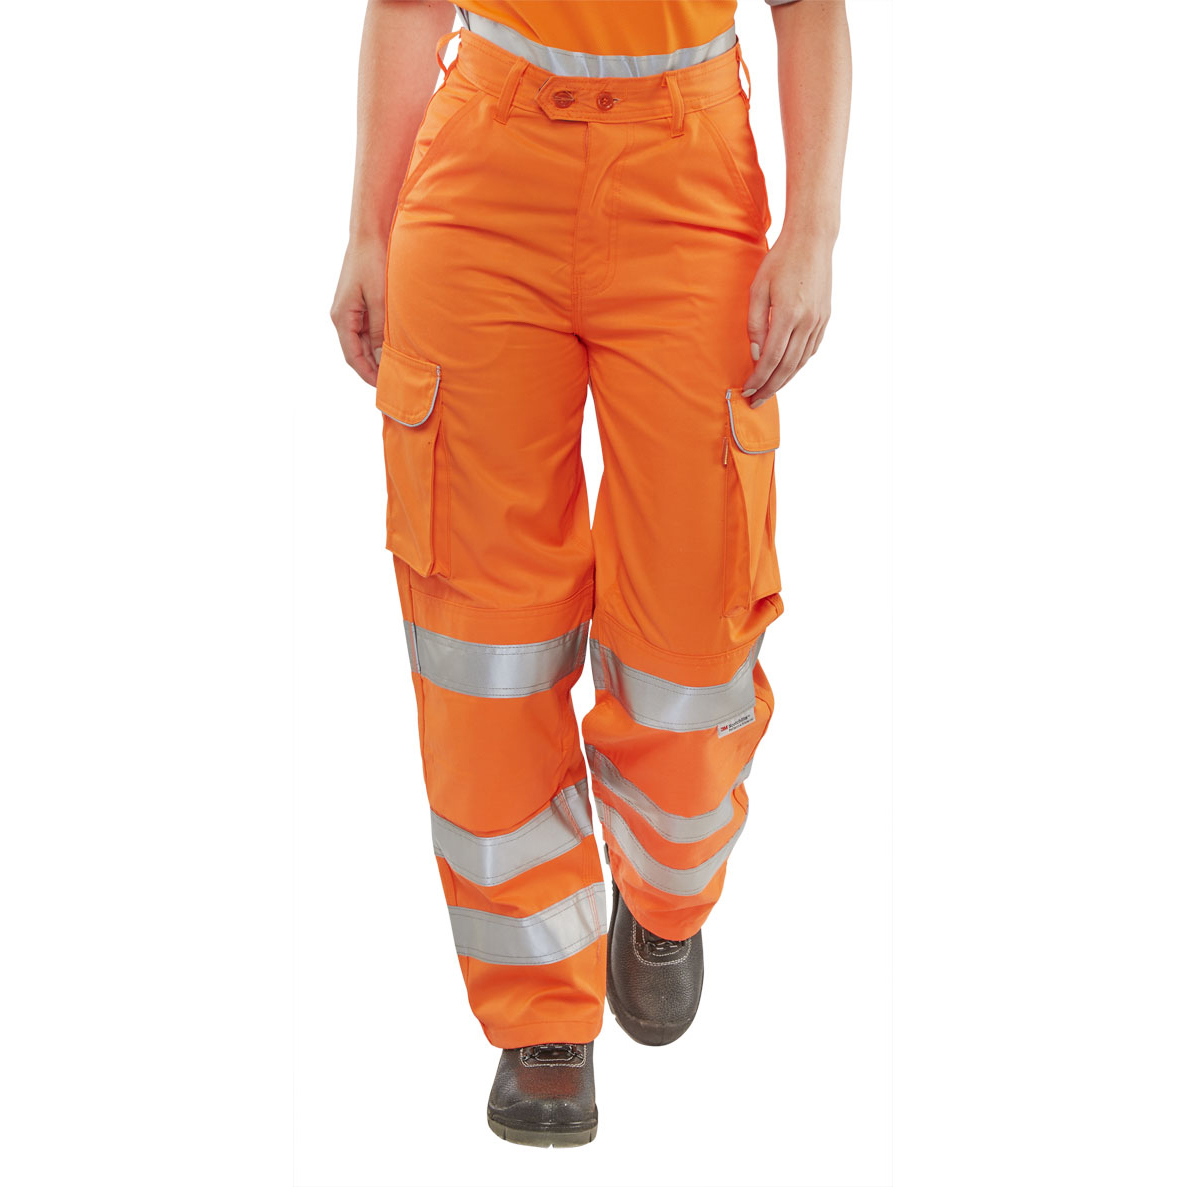 BSeen Rail Spec Trousers Ladies Teflon Hi-Vis Reflective Orange 32 Ref LRST32 *Up to 3 Day Leadtime*